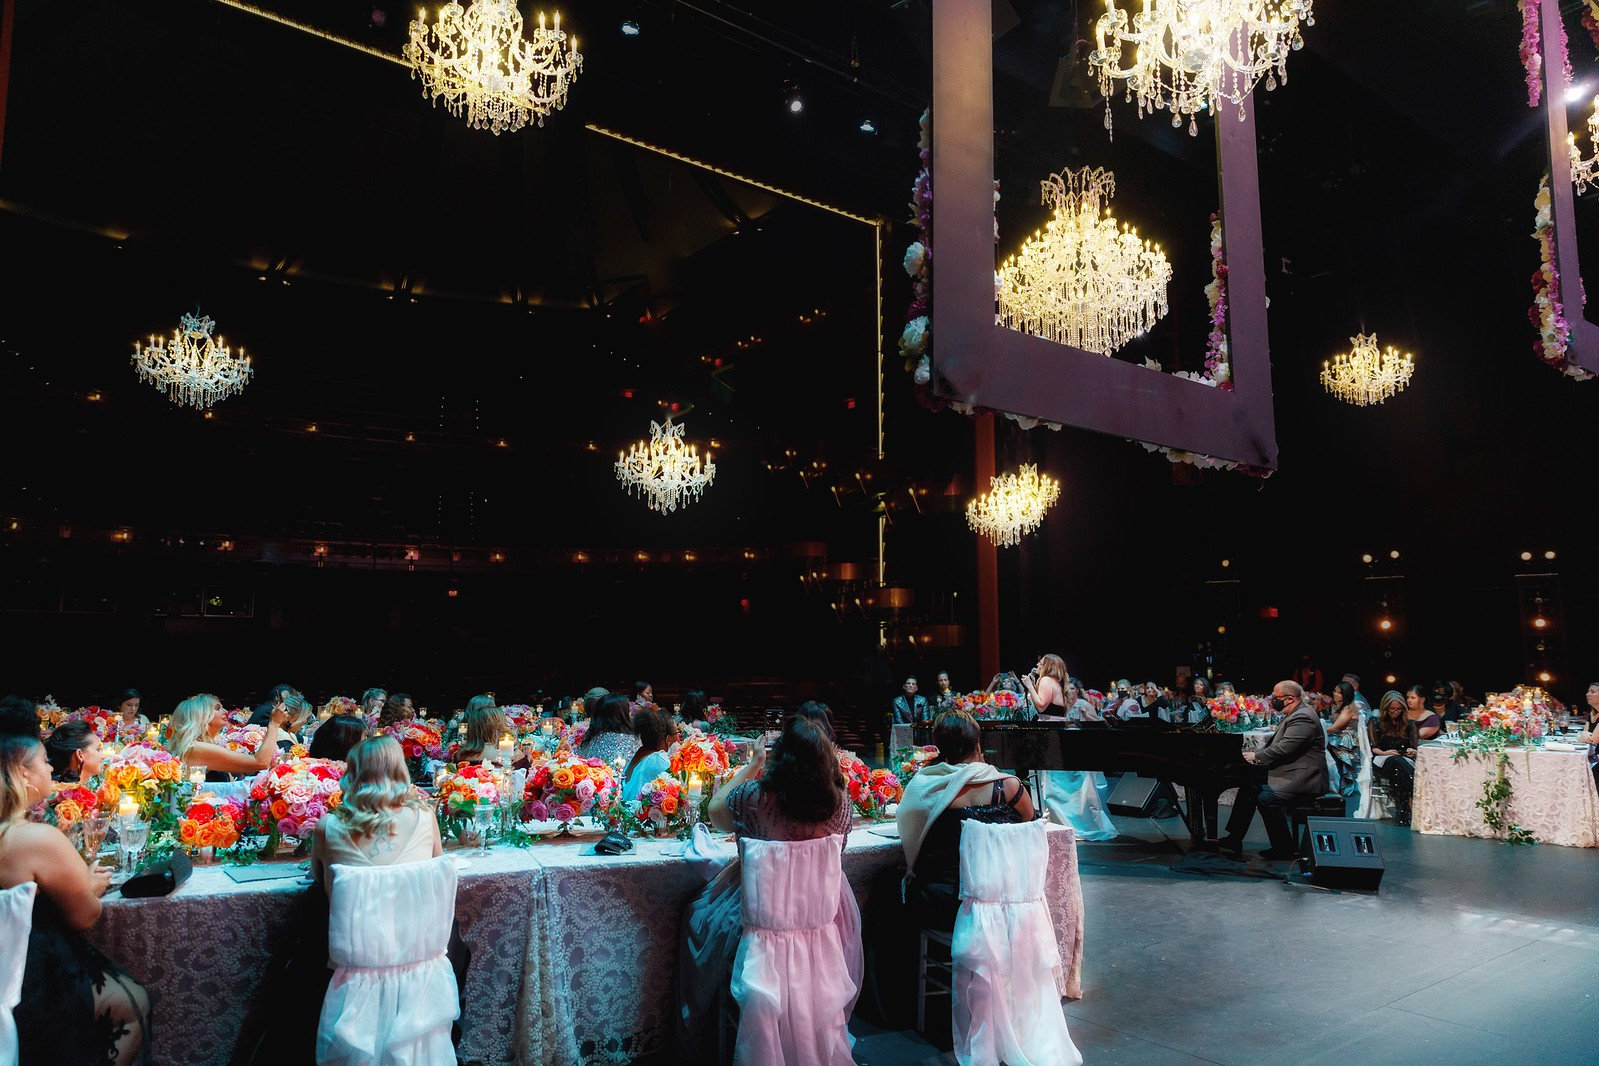 A large group of people sitting at formal dining tables listen to a singer and pianist performing in the center of them all.